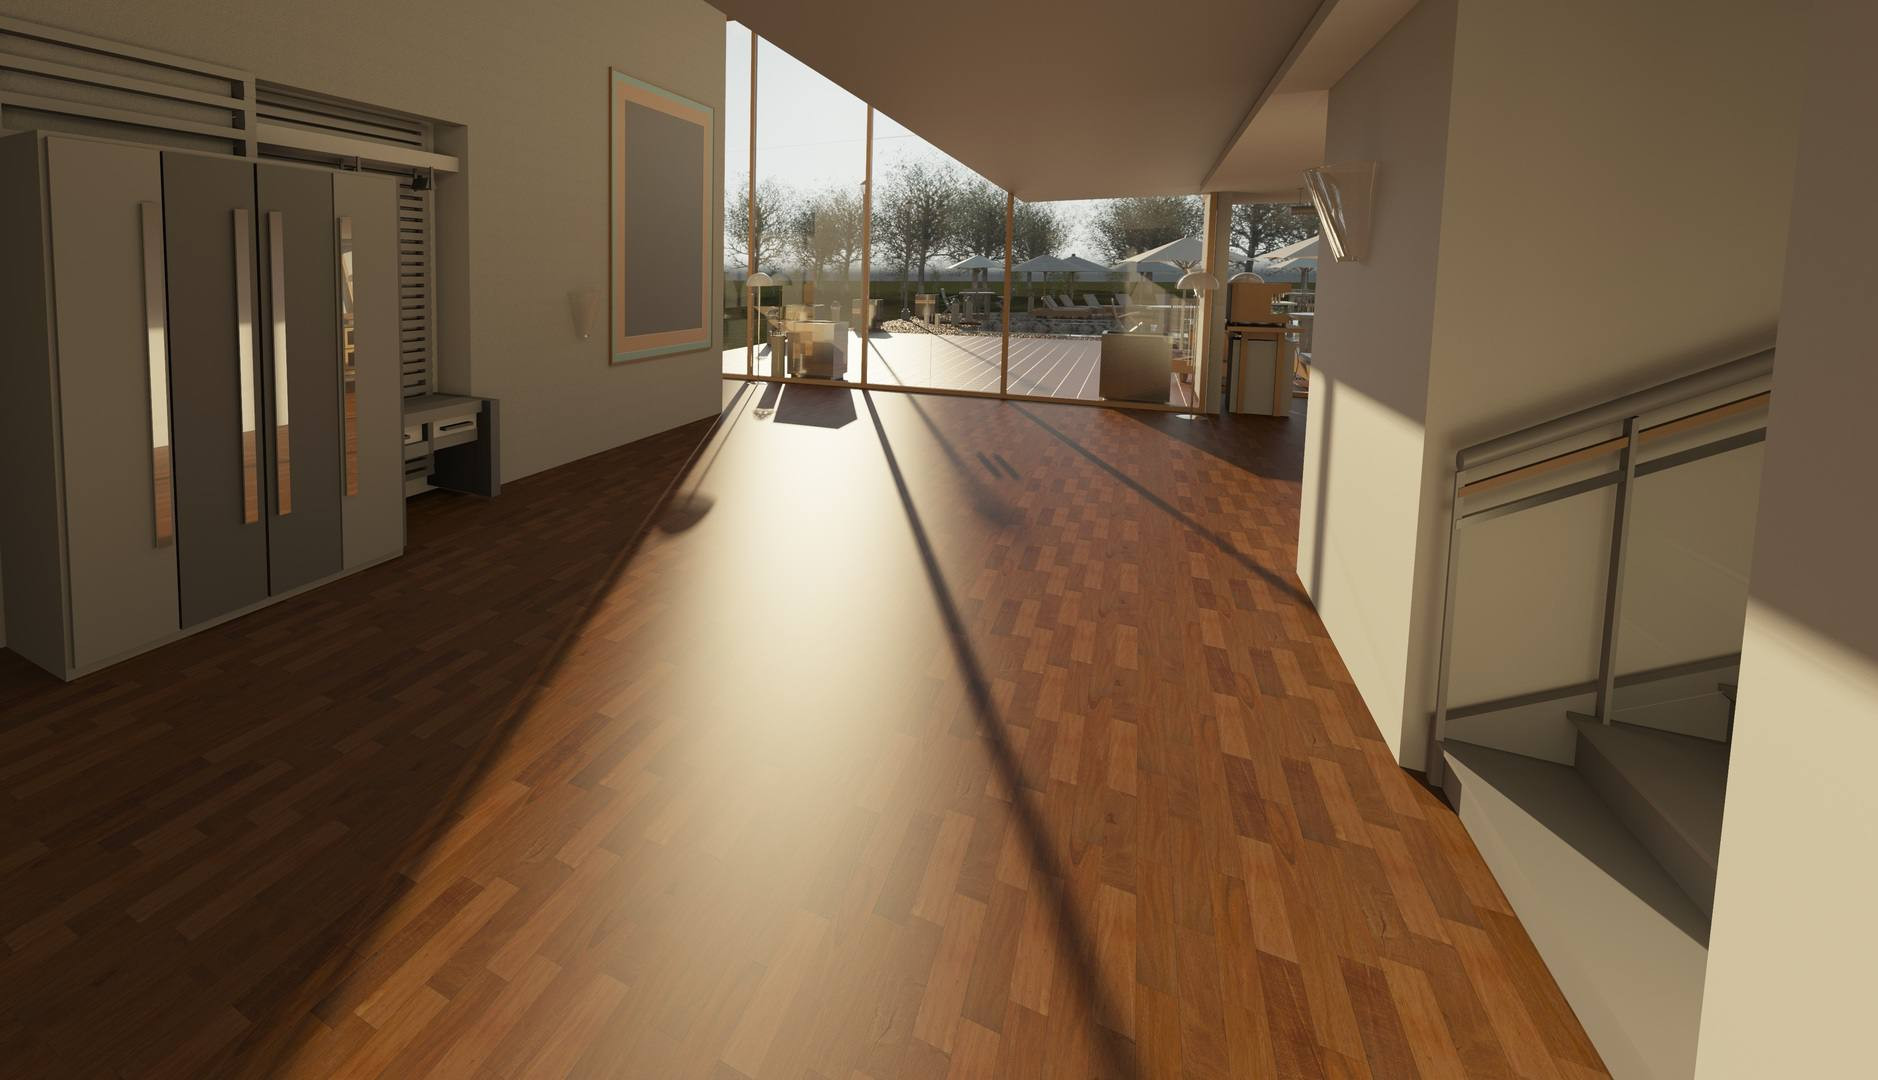 hardwood floor refinishing twin cities of common flooring types currently used in renovation and building with architecture wood house floor interior window 917178 pxhere com 5ba27a2cc9e77c00503b27b9